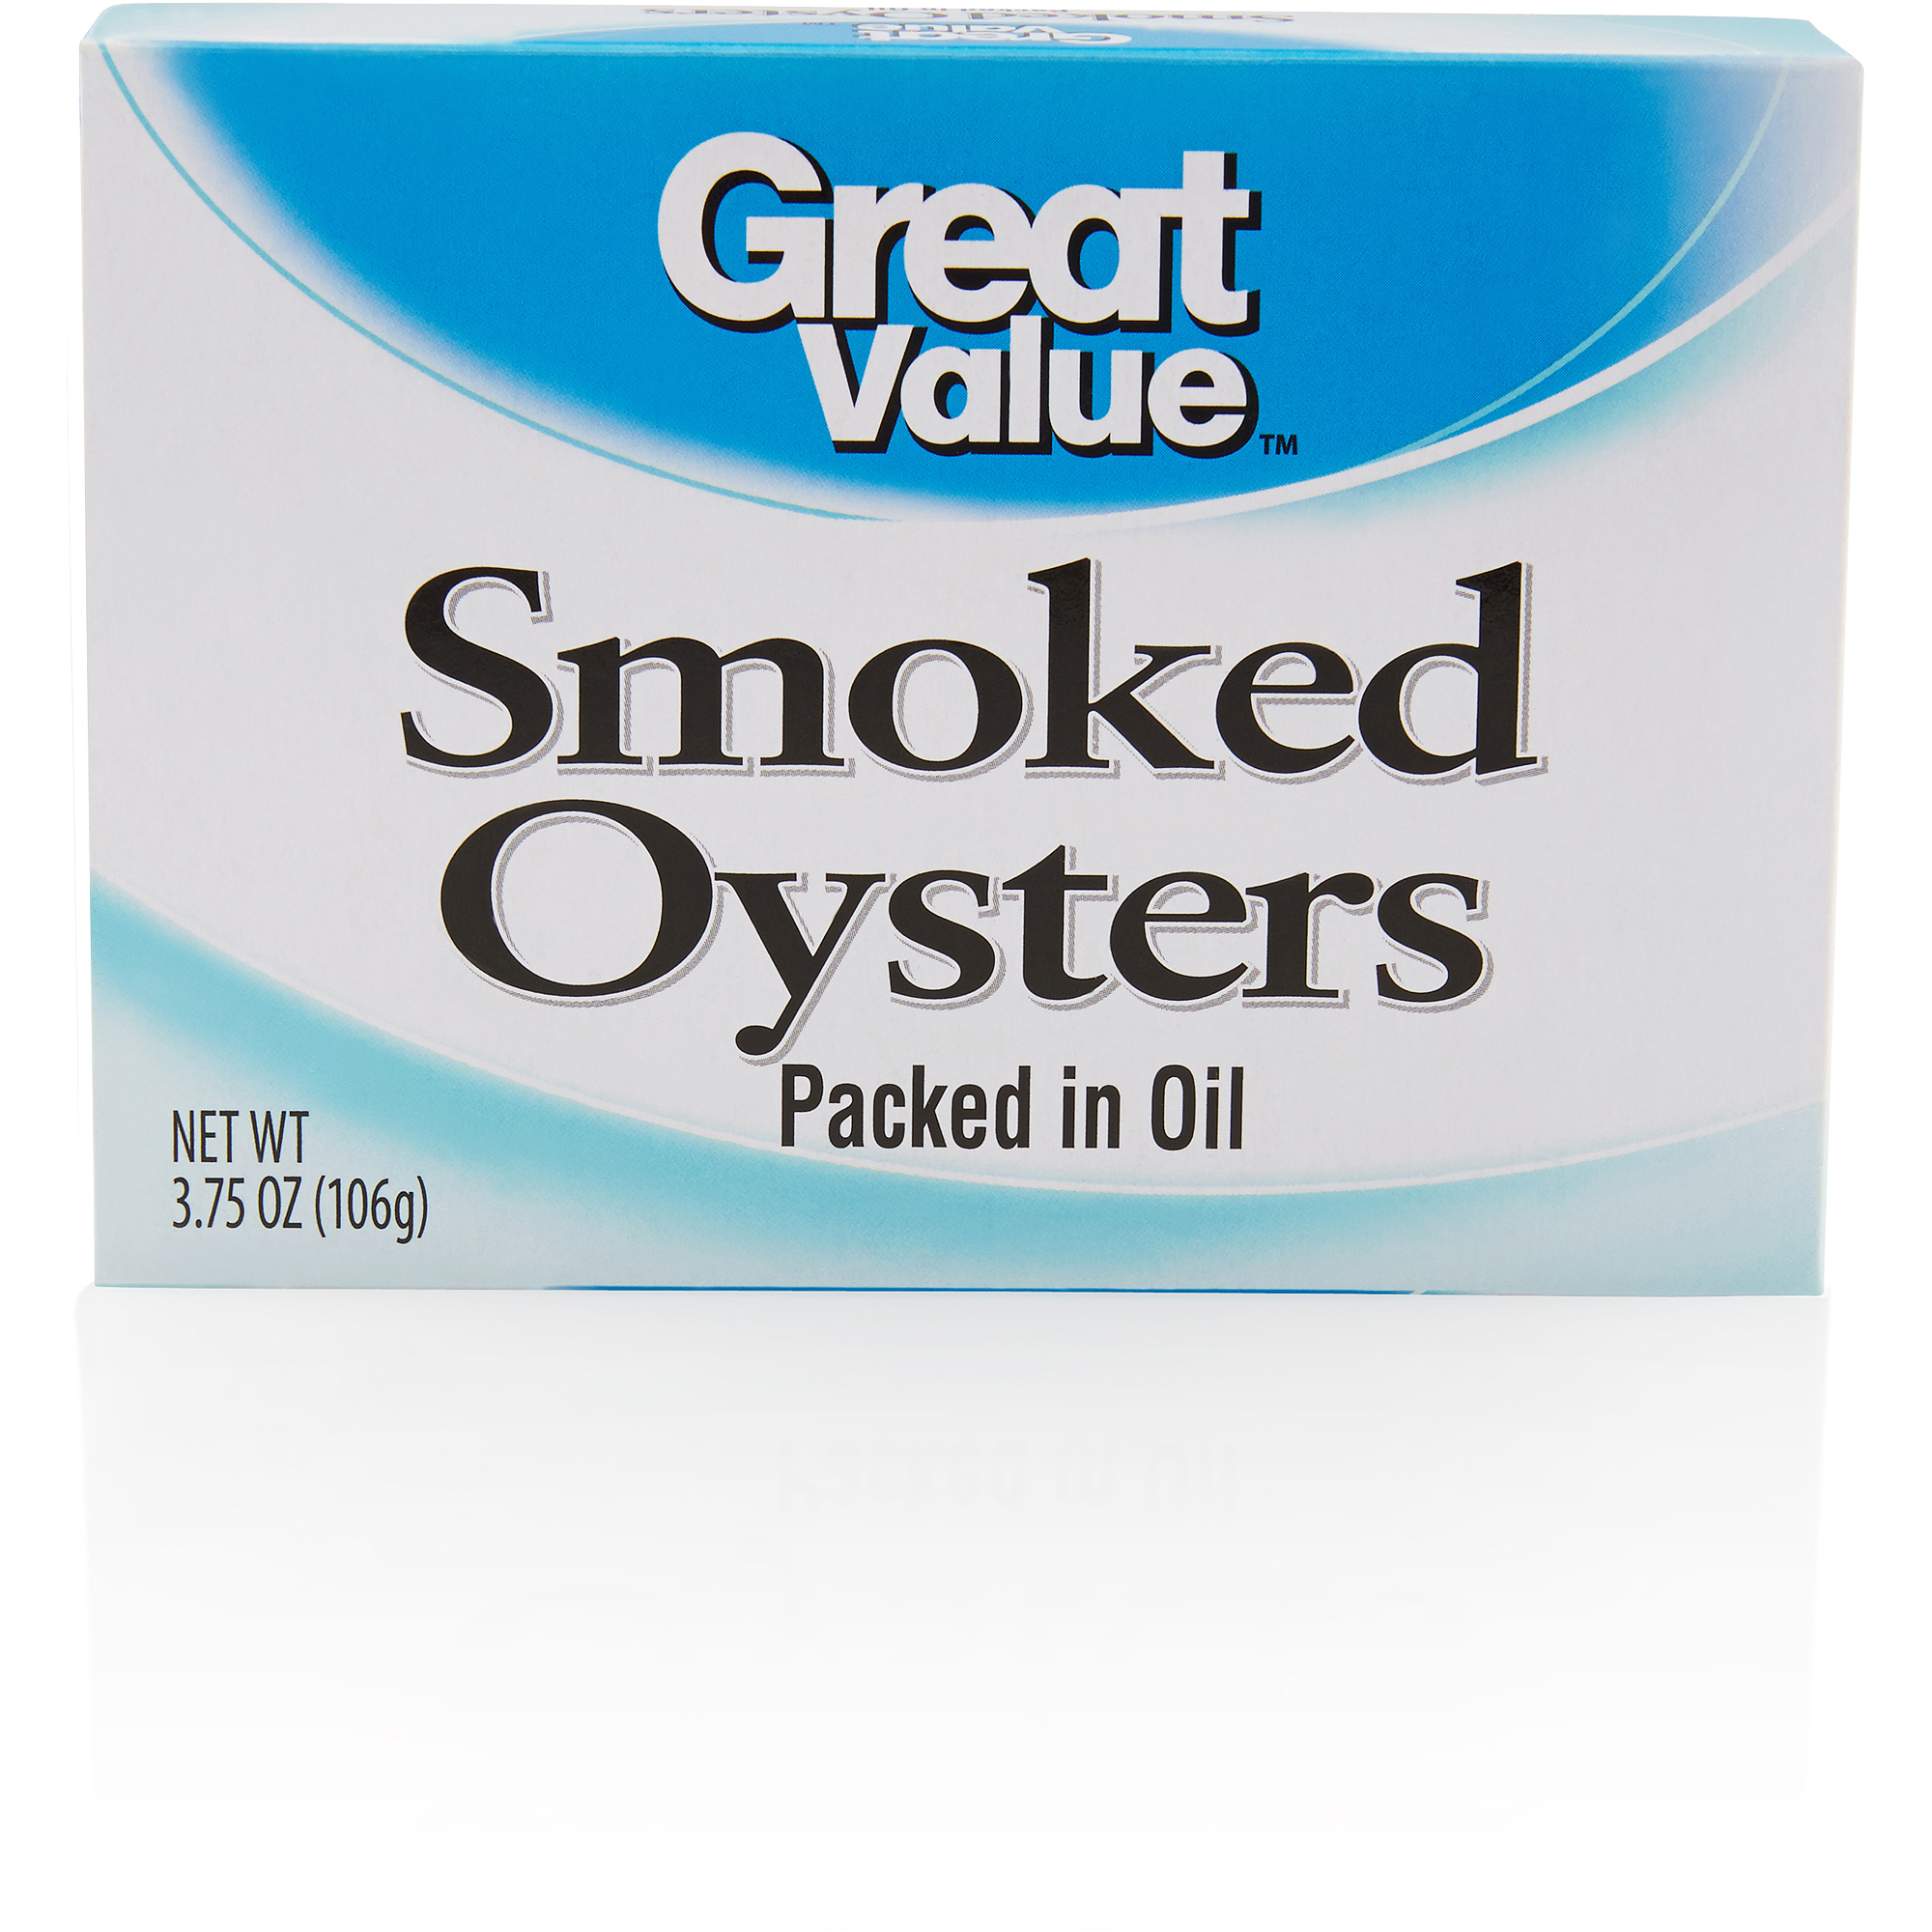 Great Value Orange Smoked Oysters, 3.75 oz by Wal-Mart Stores, Inc.